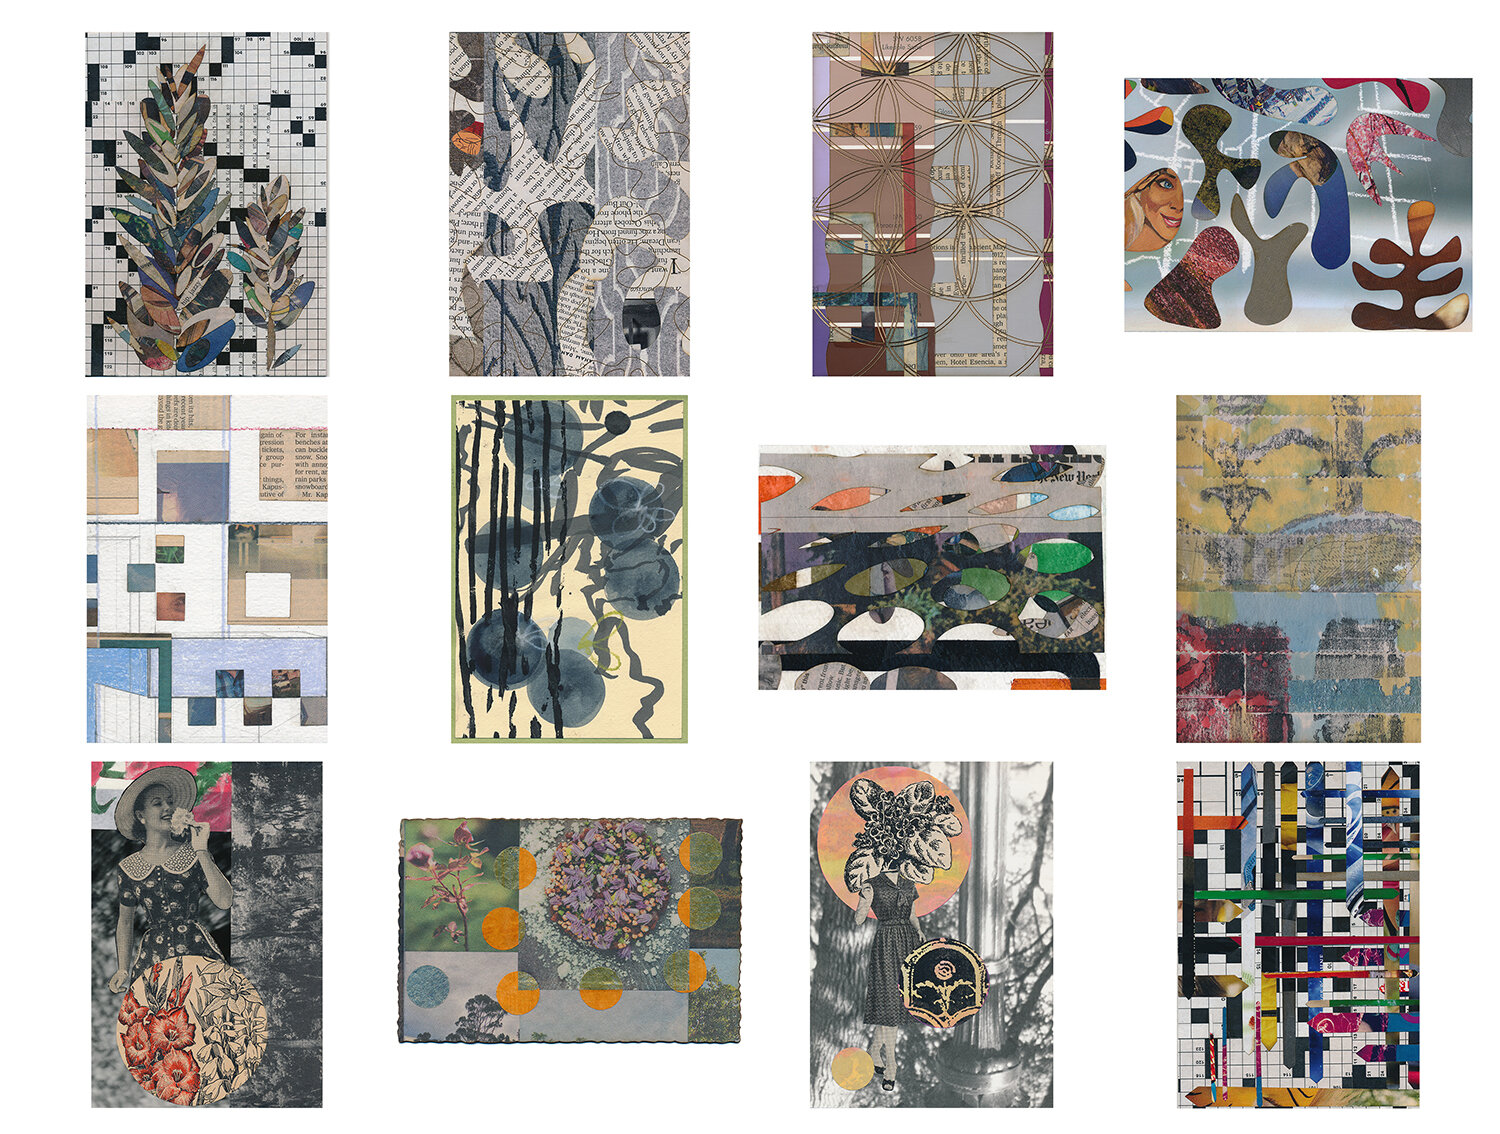 A completed mail art subscription, snail mailed small works of collage in postcard form to JD, March 2015 – February 2016.  Artisanal Postcards Numbers 1,125 • 1,082 • 1,101 • 1,103 • 1,136 • 1,174 • 1,164 • 1,225 • 1,185 • 1,194 • 1,201 • 1,152